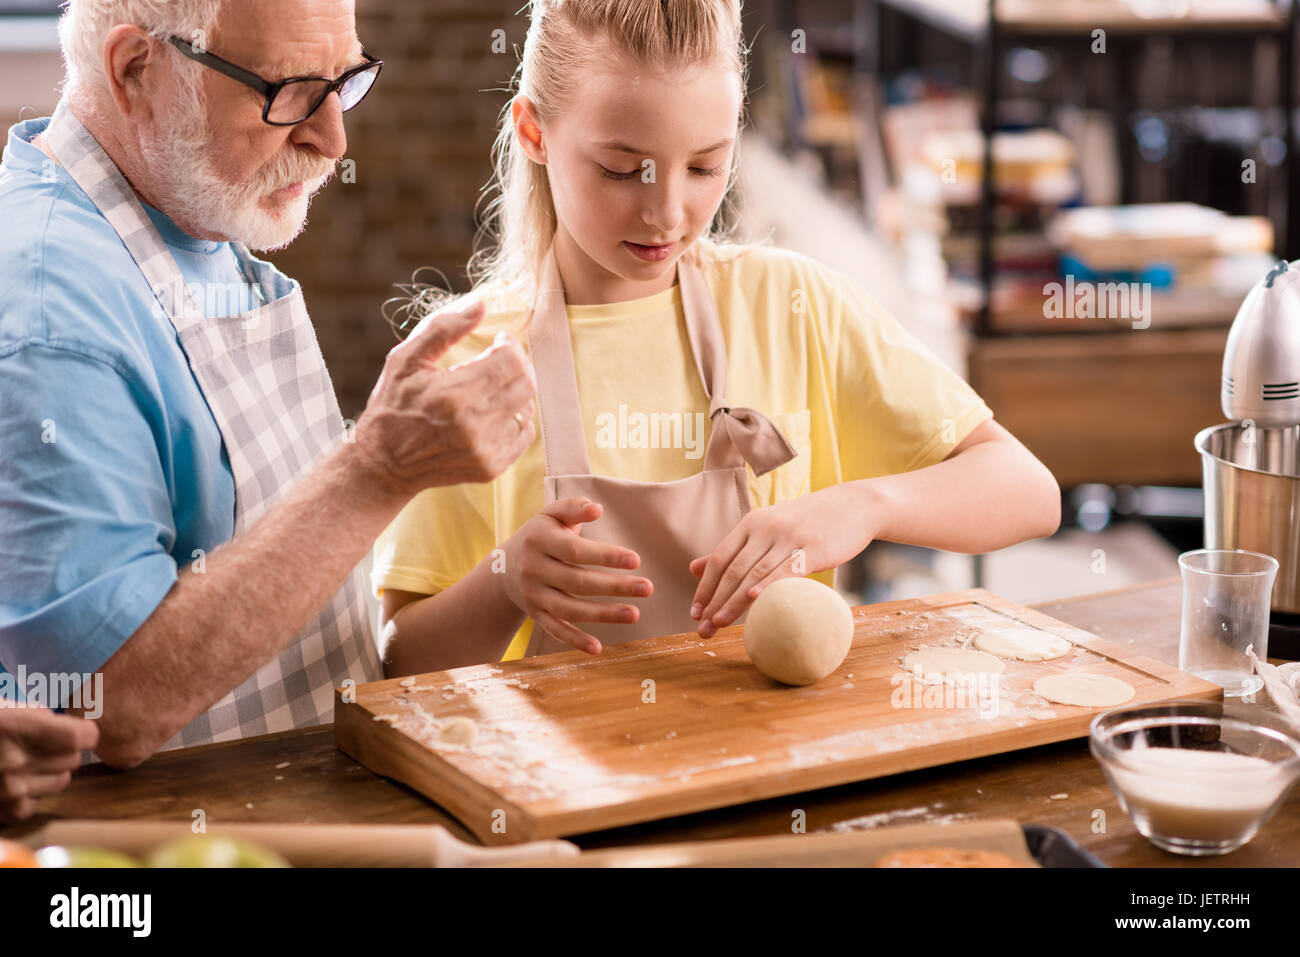 grandfather and granddaughter cooking and kneading dough for cookies at kitchen table, cooking in kitchen concept - Stock Image